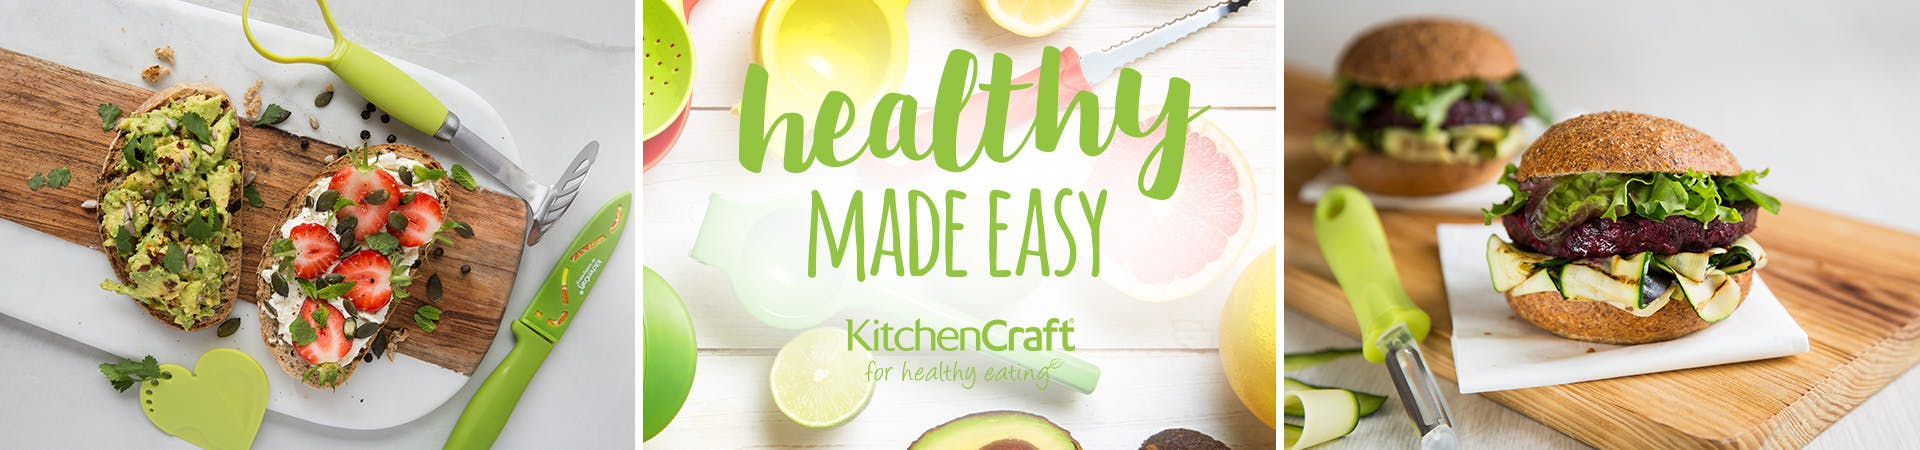 Healthy Eating | KitchenCraft